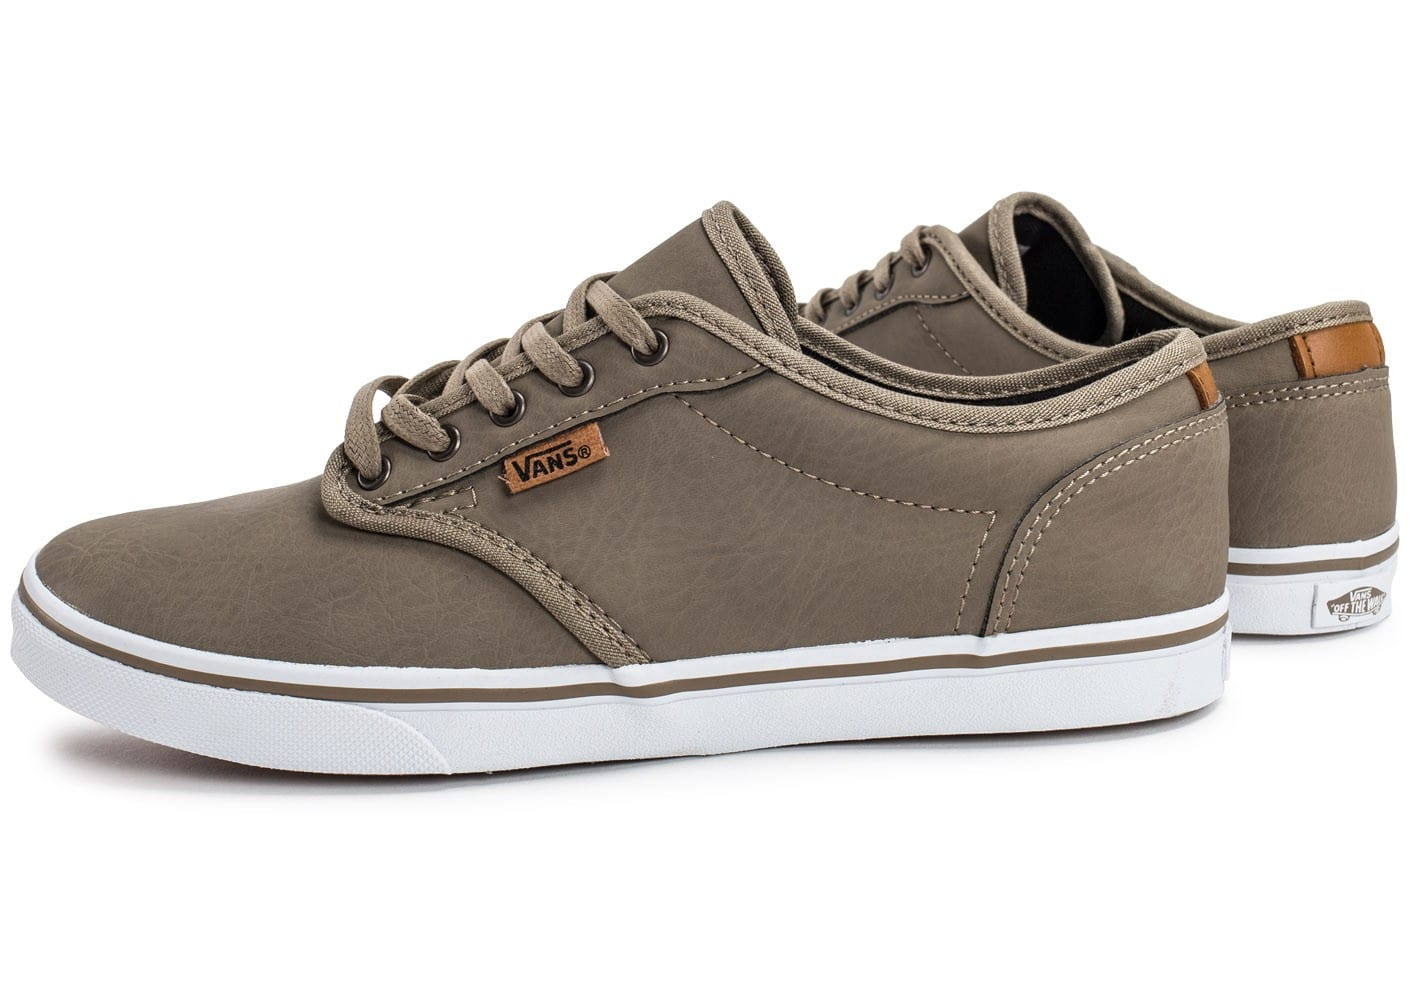 Vans Atwood Deluxe Beige - Chaussures Chaussures de Skate Femme